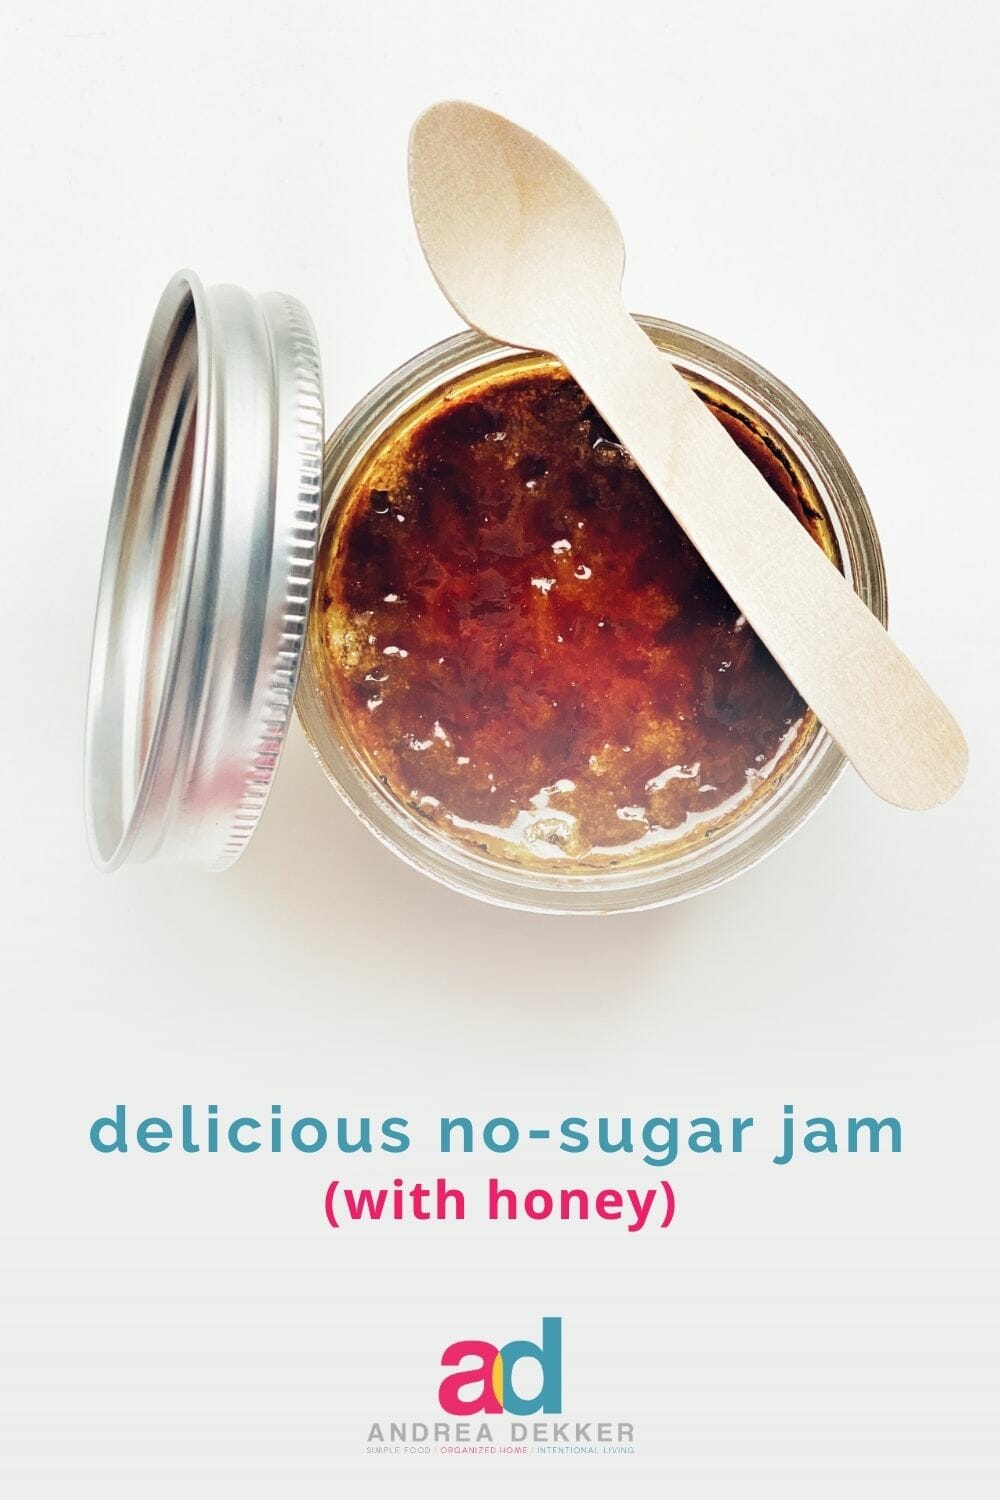 Get the great taste of homemade jam without all the refined white sugar. Just a little bit of honey does the trick — no one will know the difference! via @andreadekker